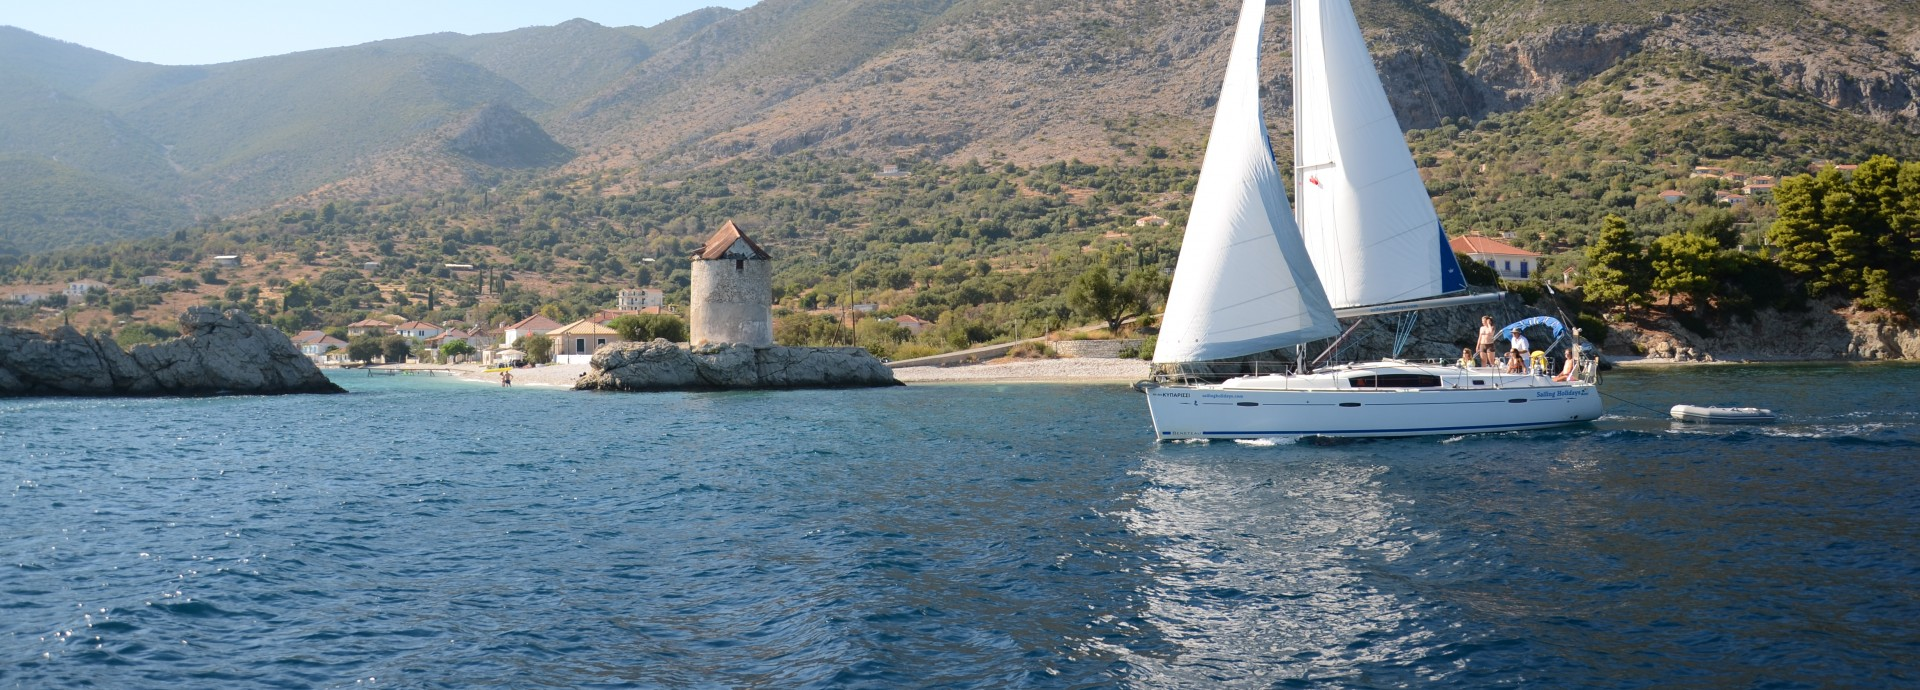 Beneteau 40 Sailing past Kalamos